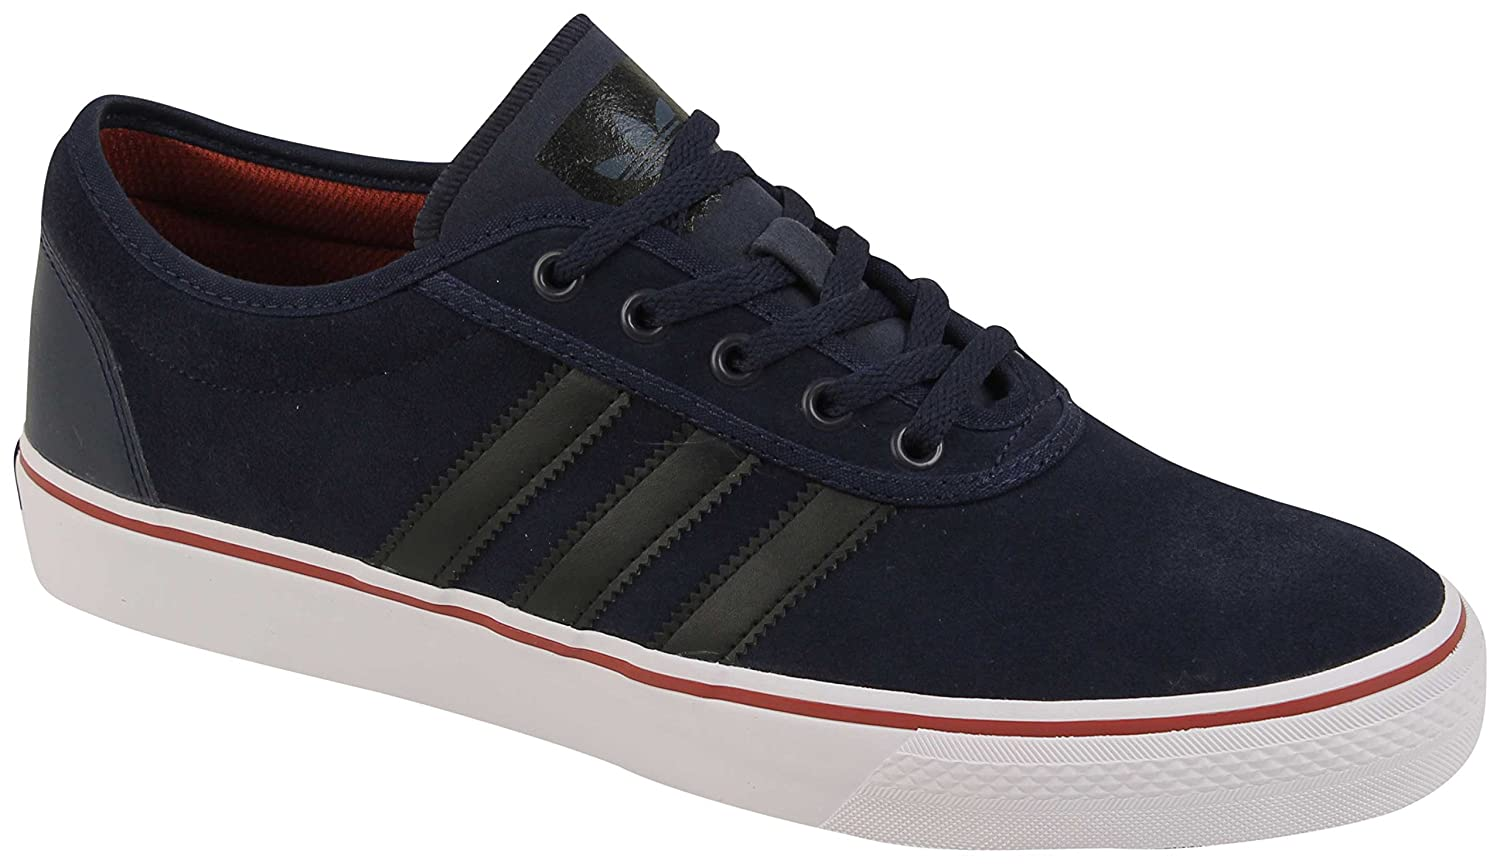 Adidas Men's Adi-Ease Lace up Sneaker B01M1GJVEL 5.5 B(M) US Women / 4.5 D(M) US Men|Collegiate Navy/Core Black/Footwear White